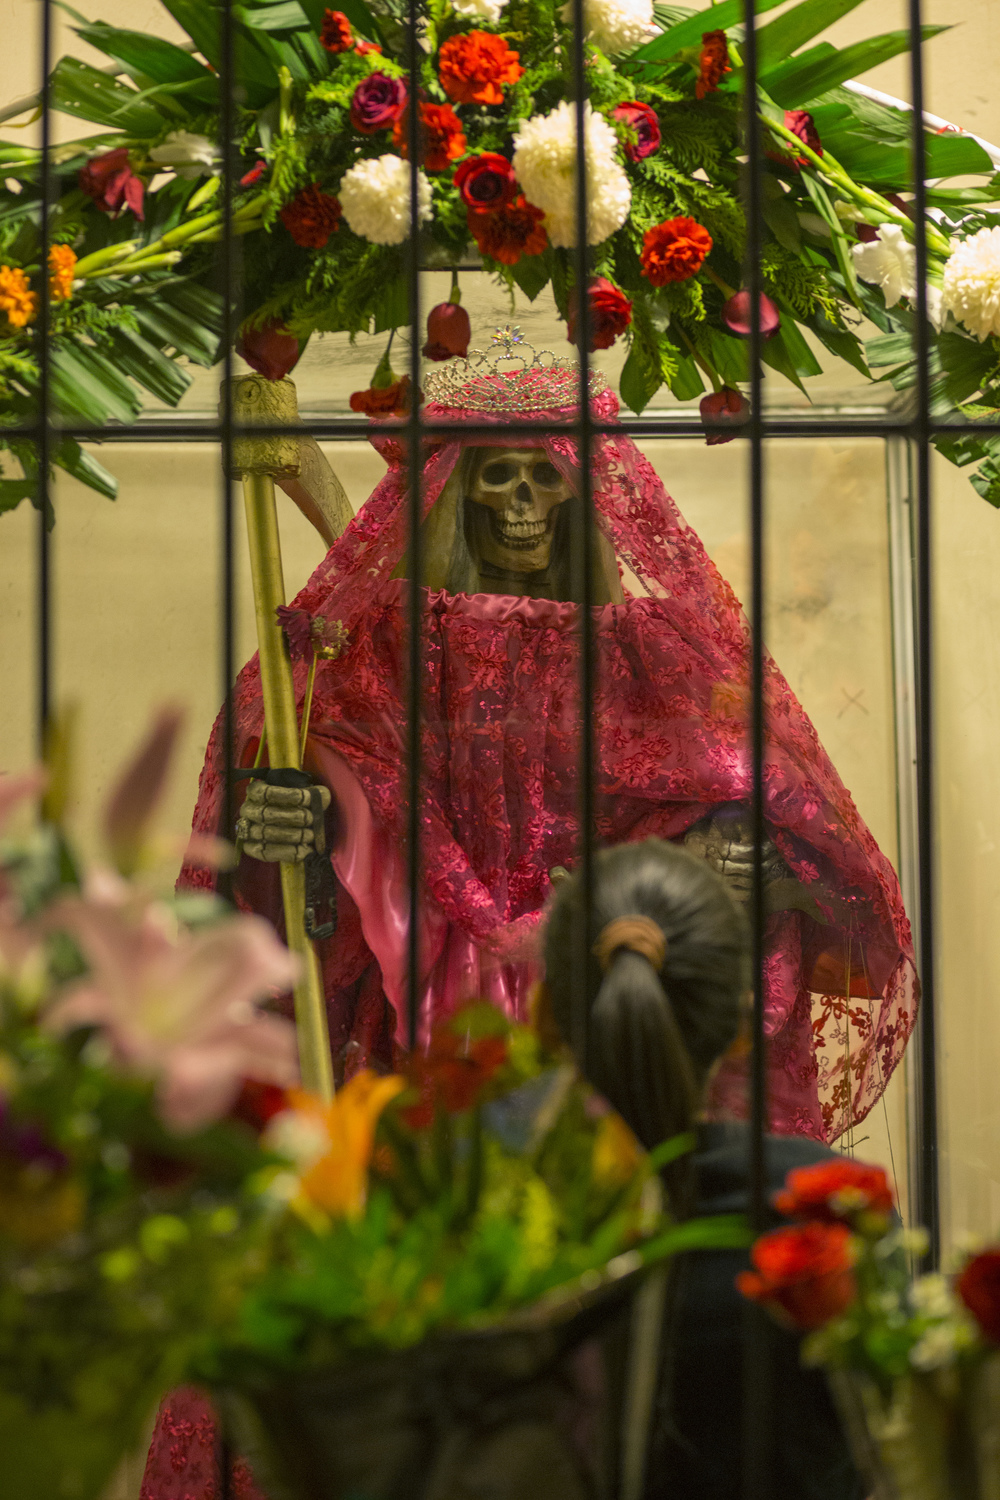 A woman prays at a Santa Muerte altar on Nov. 1, 2015 in a neighborhood on the outskirts of Tijuana. (Elaine Cromie)